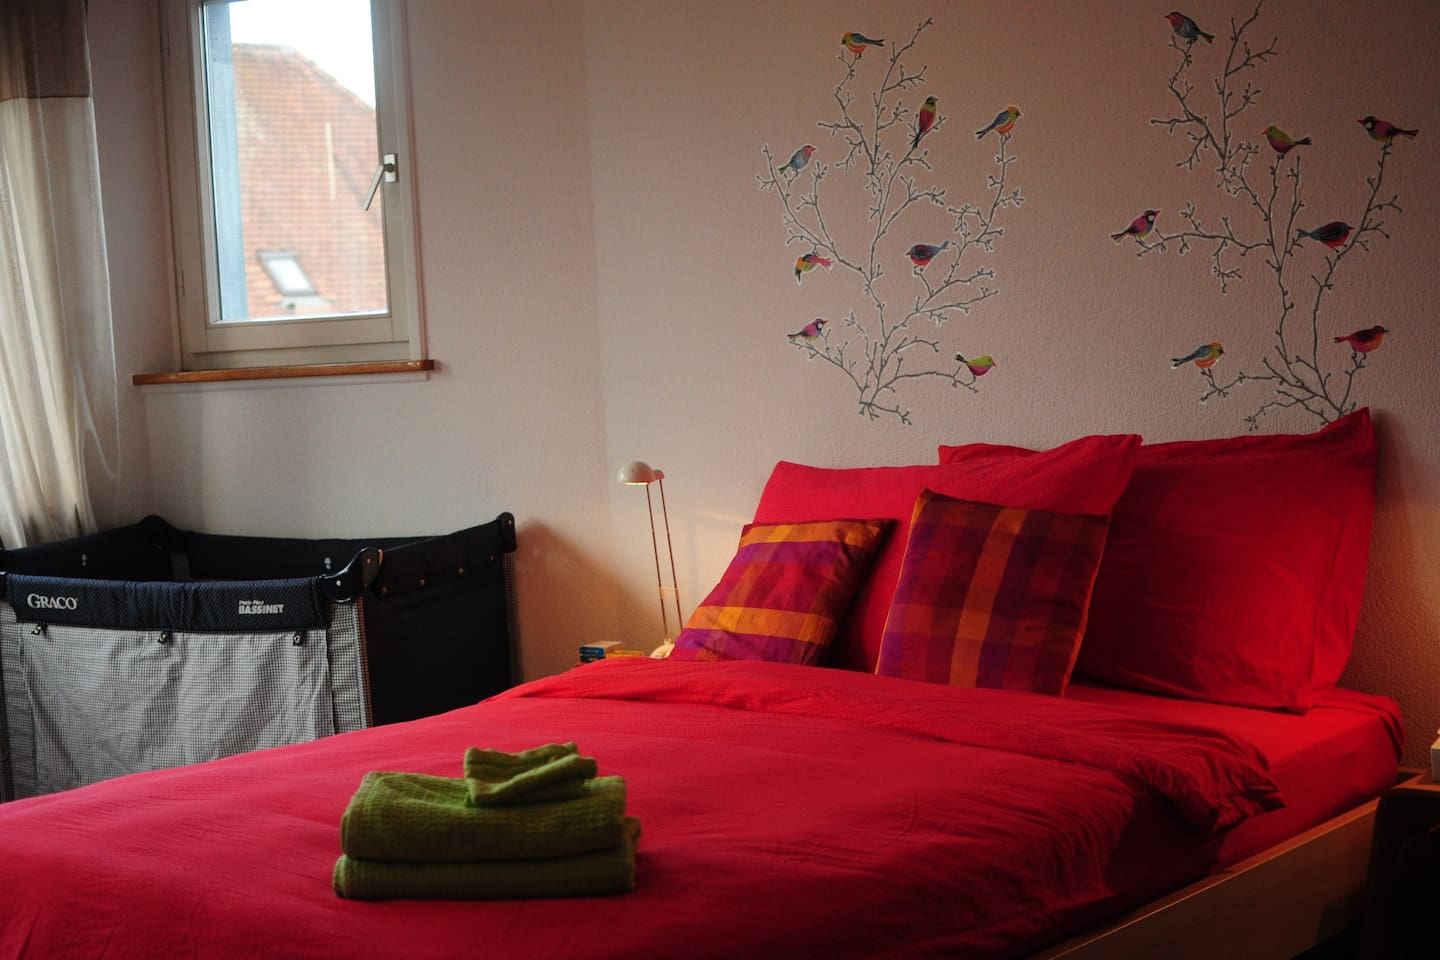 Bedroom 2: double bed, closet, crib available upon request